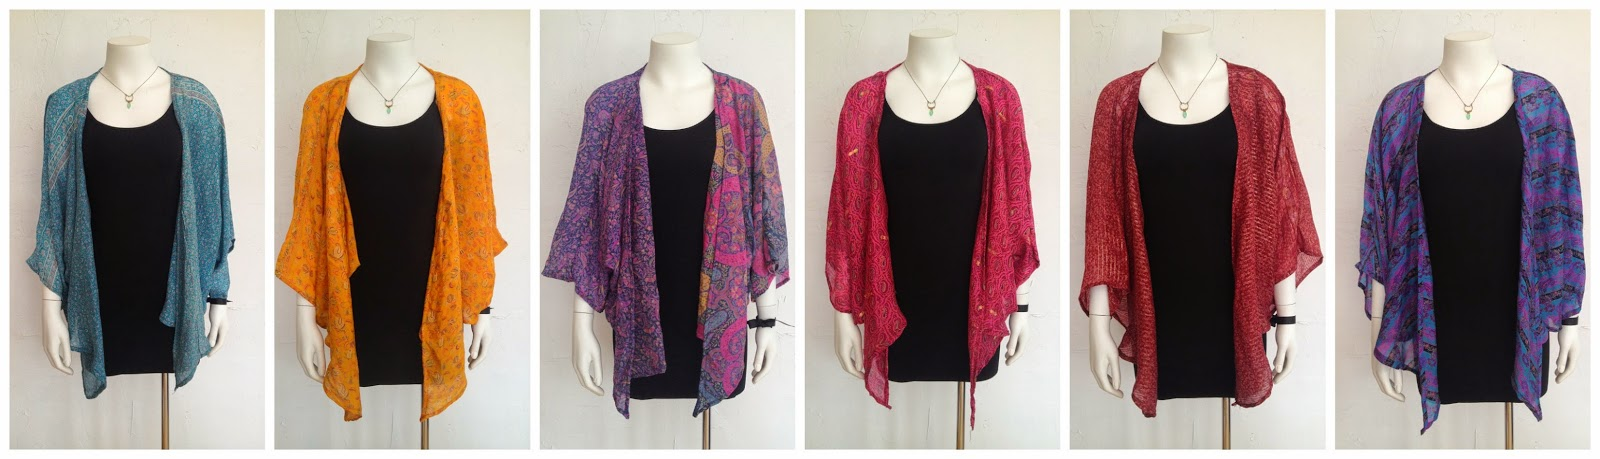 New Ronak Shrug by Indie Ella ($54), M Rena Slip (in store only), necklace by Amy Olson (in store only) at Folly